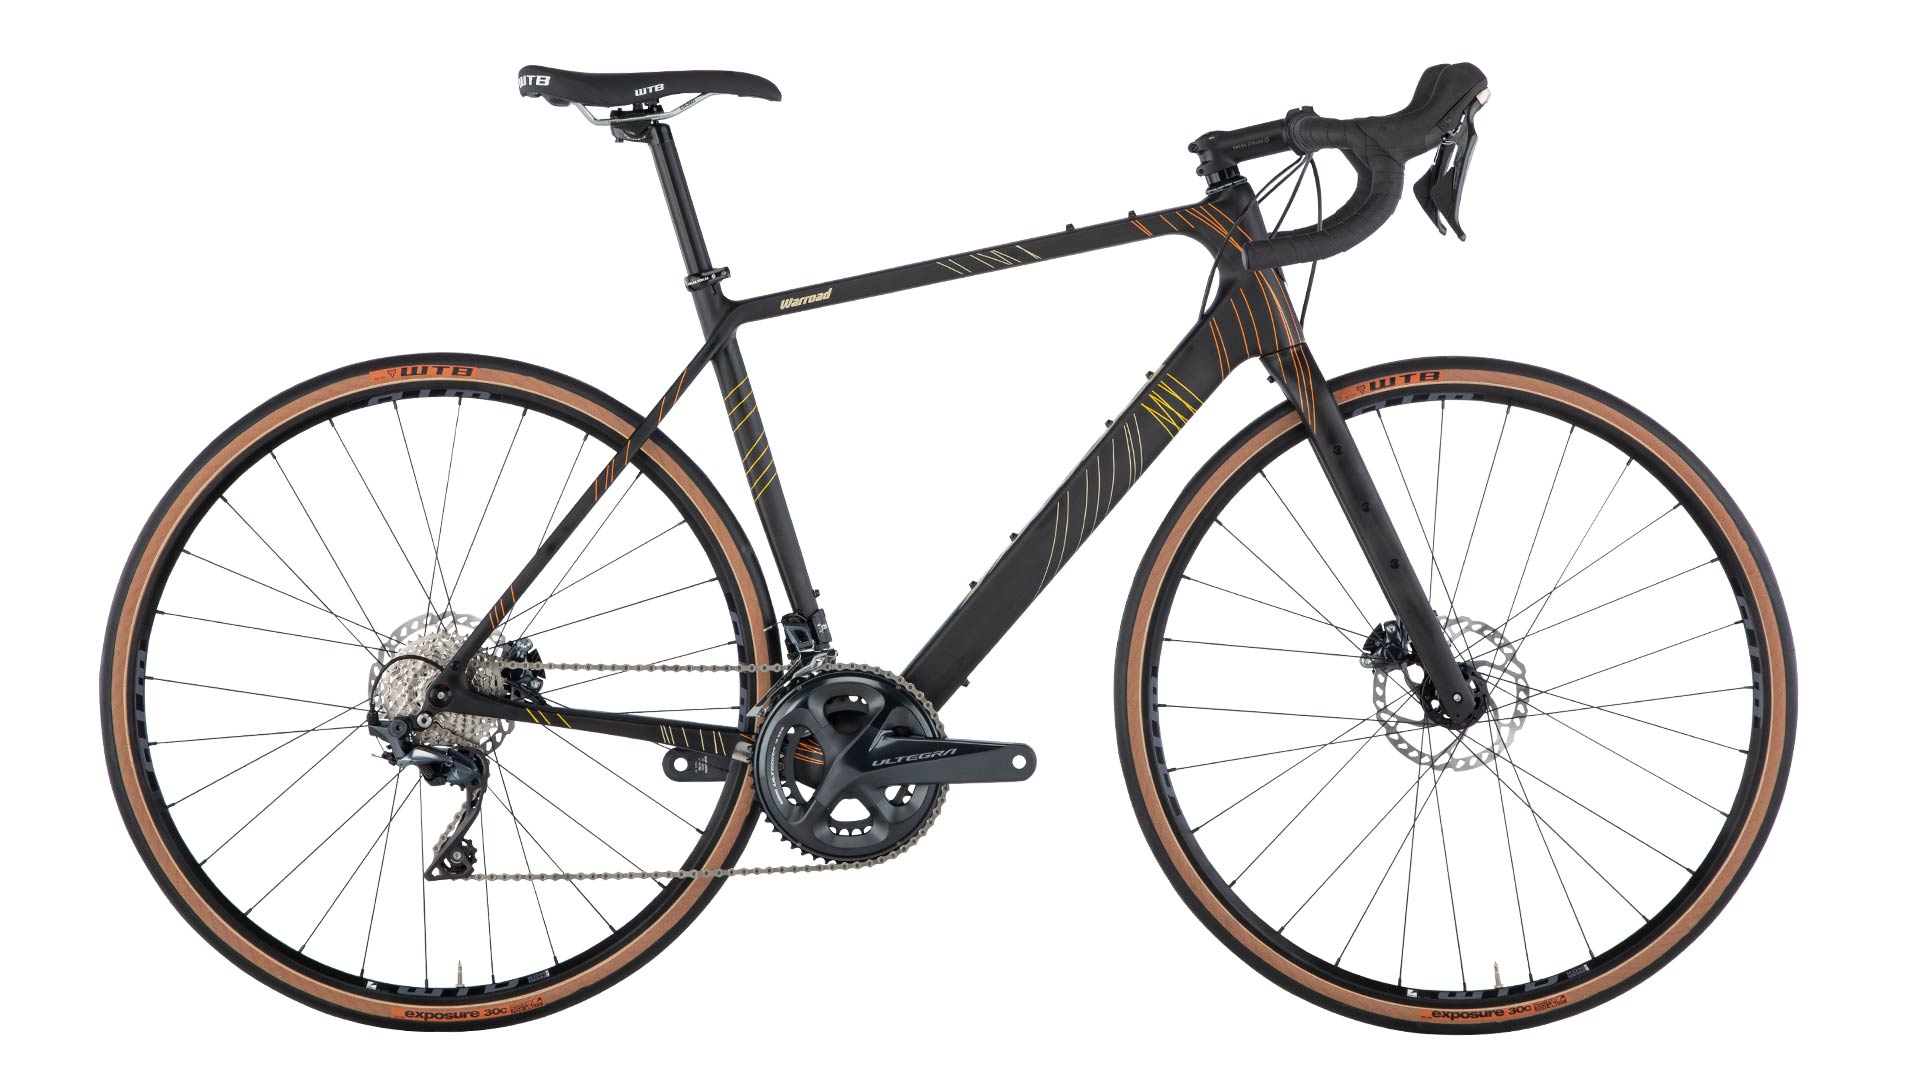 New Salsa Warroad for Imperfect Pavement 23